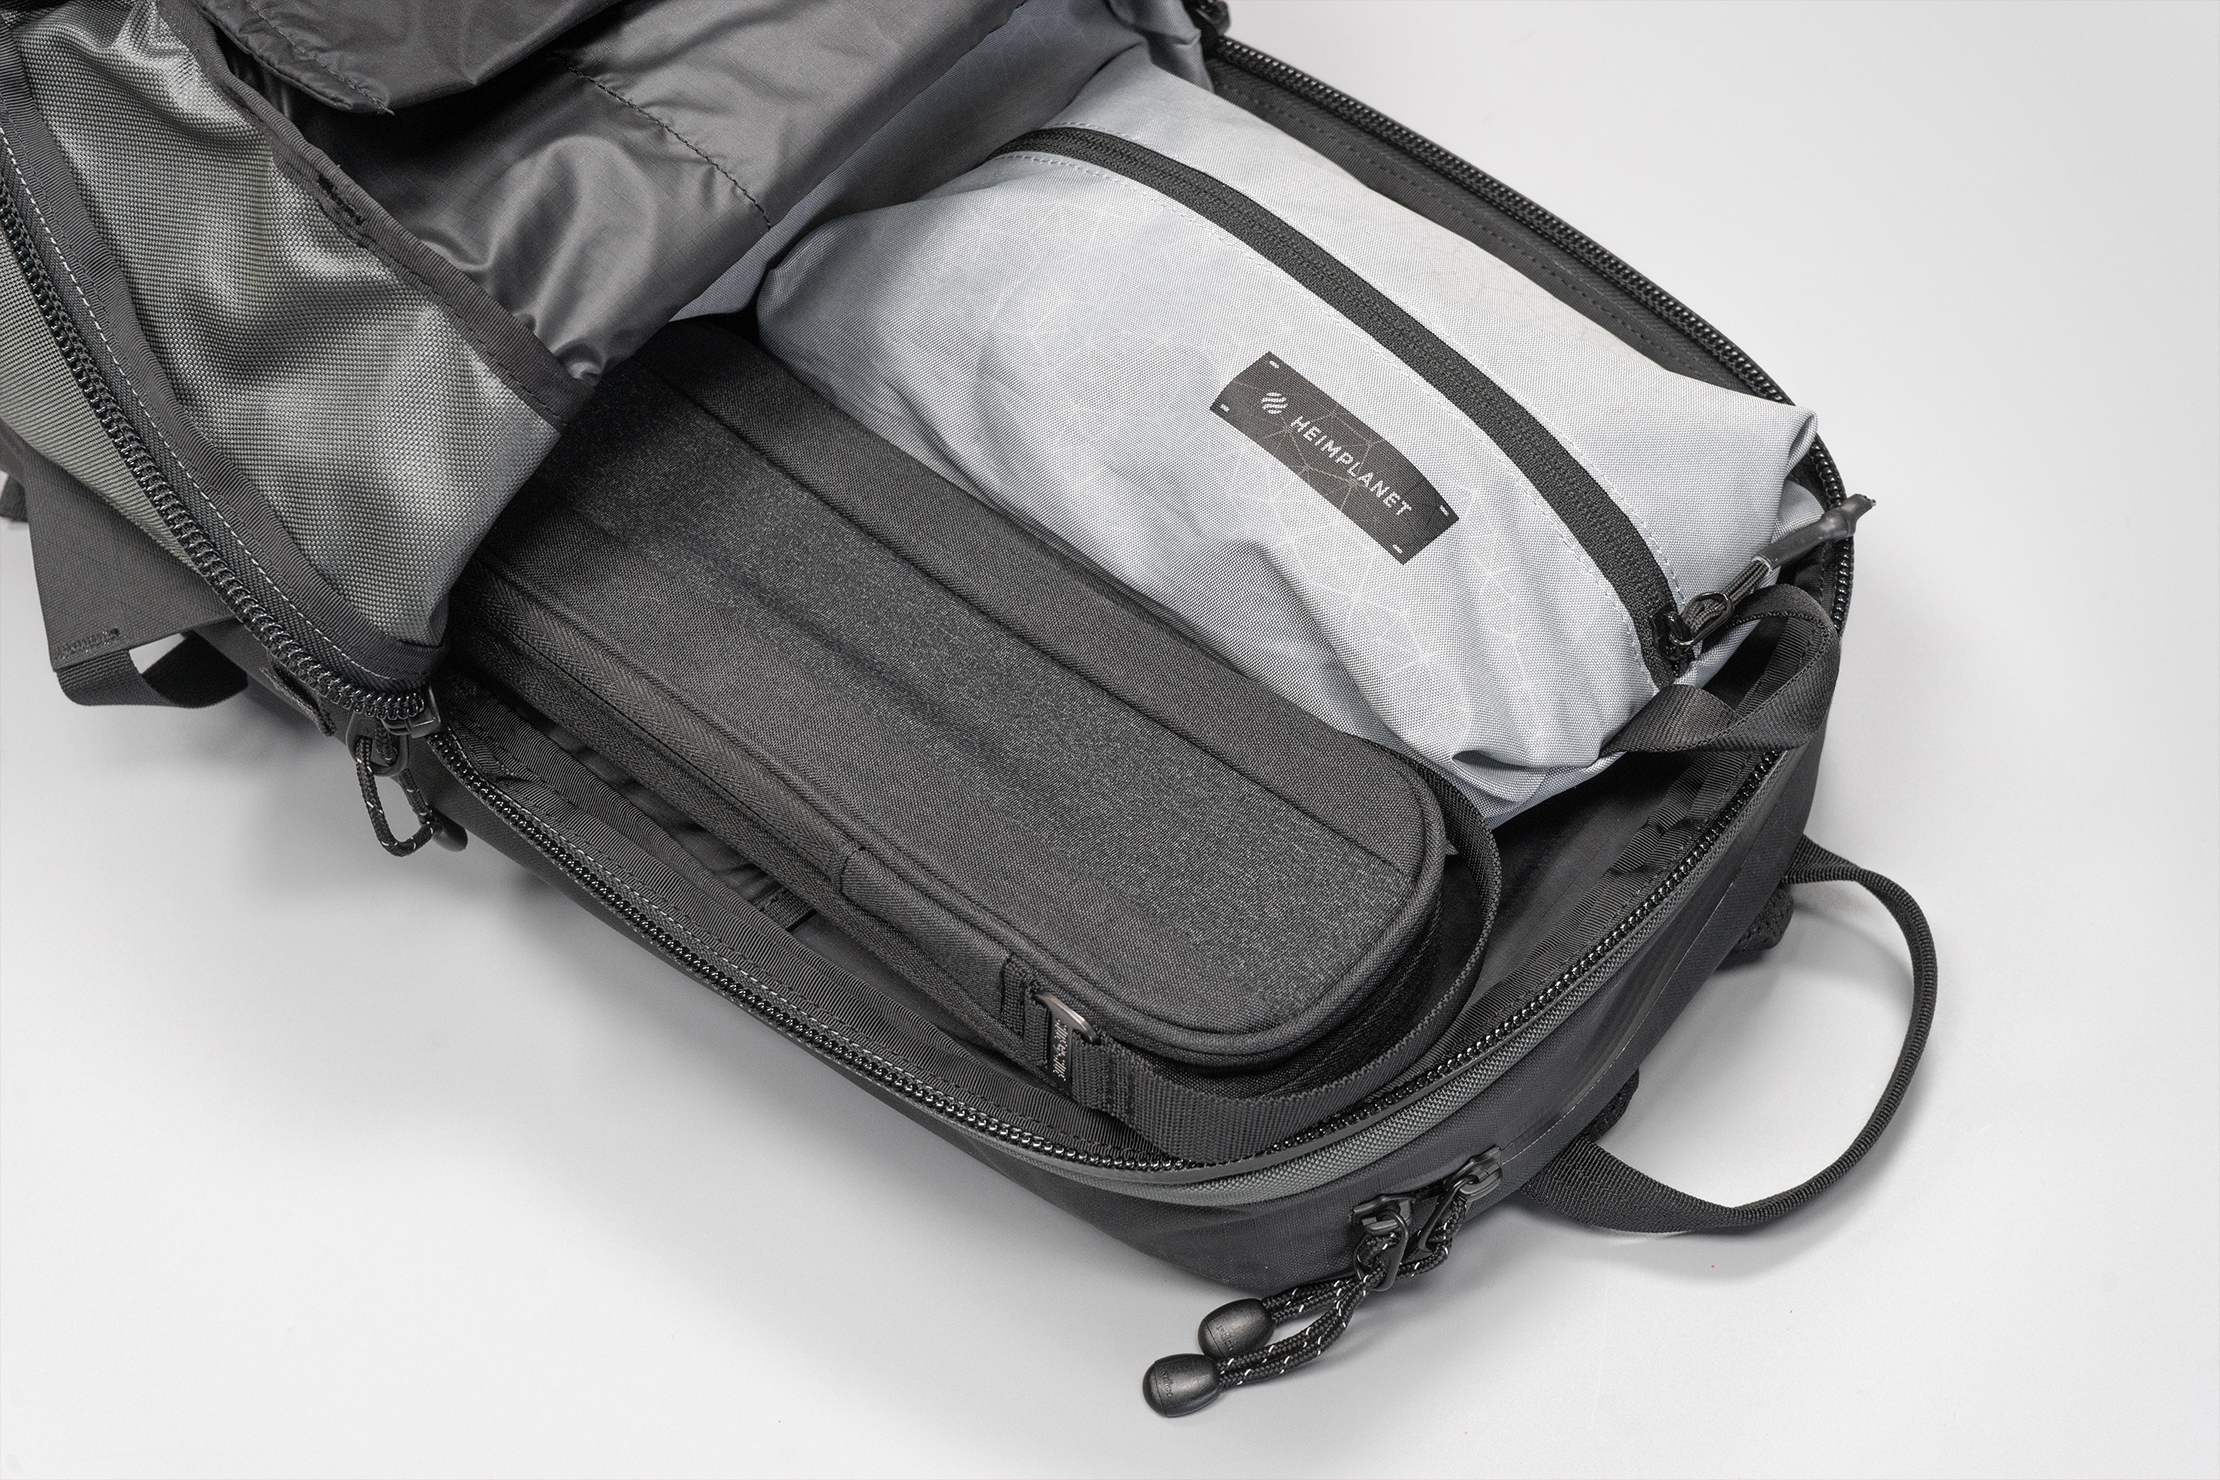 Lander Commuter Backpack 25L | At 25 liters, it's very inviting to just maximize the space in one go